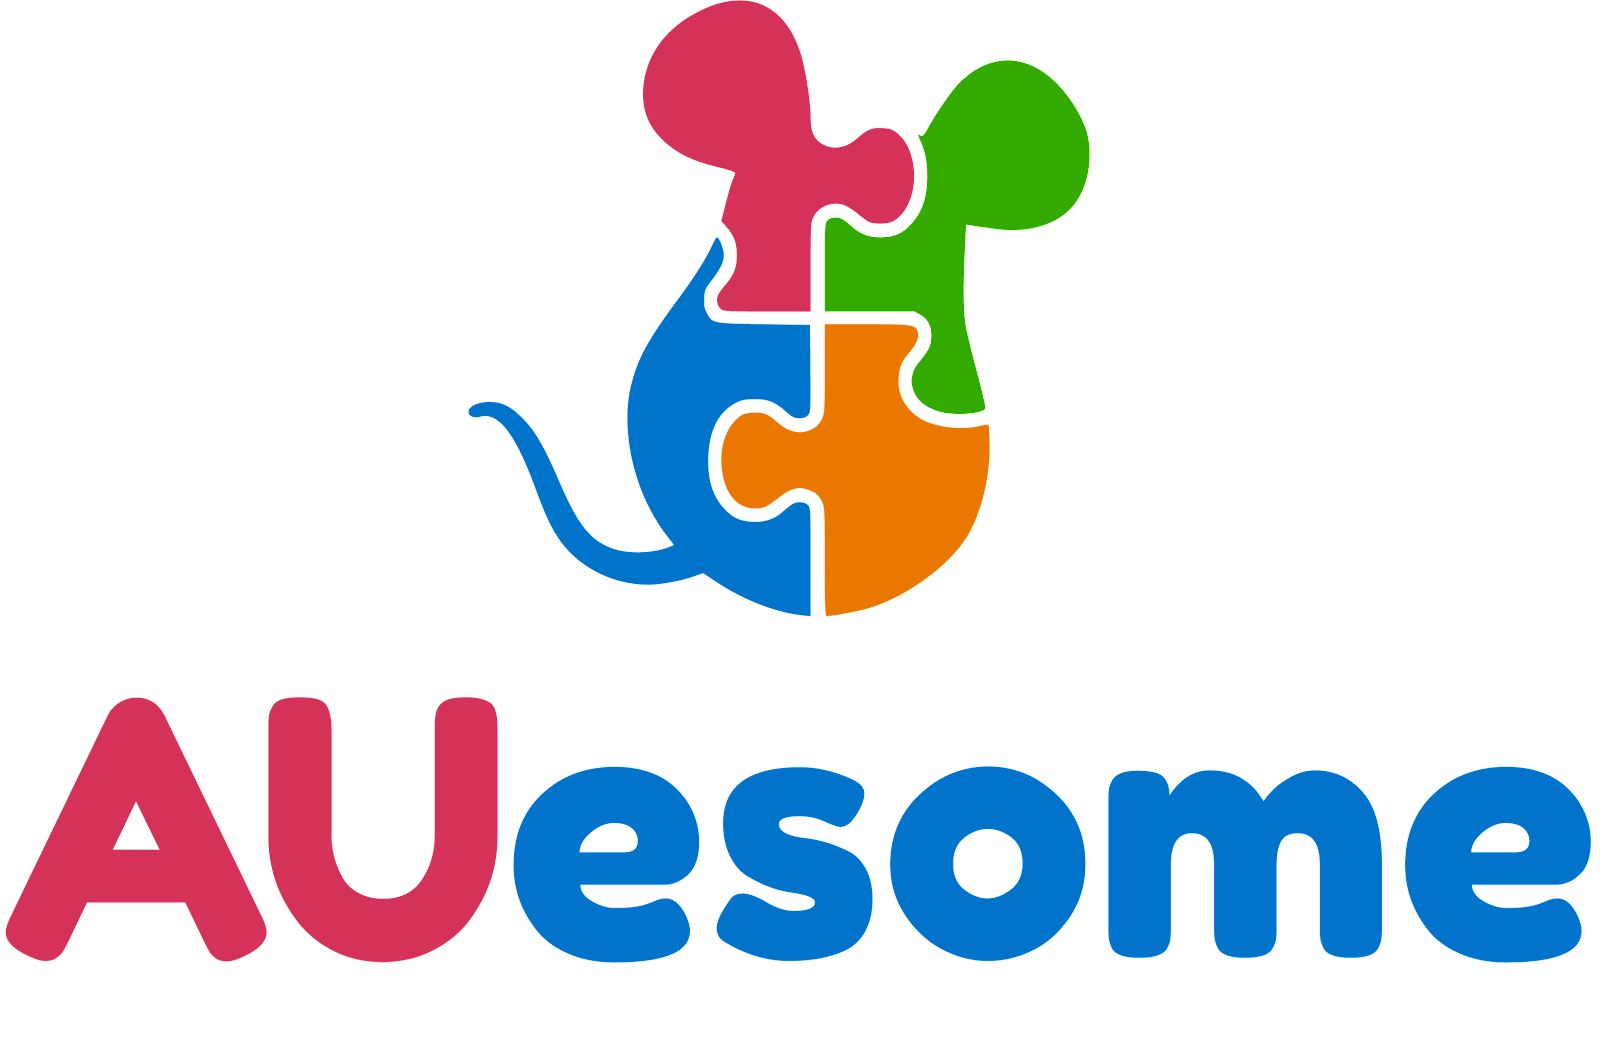 AUesome logo